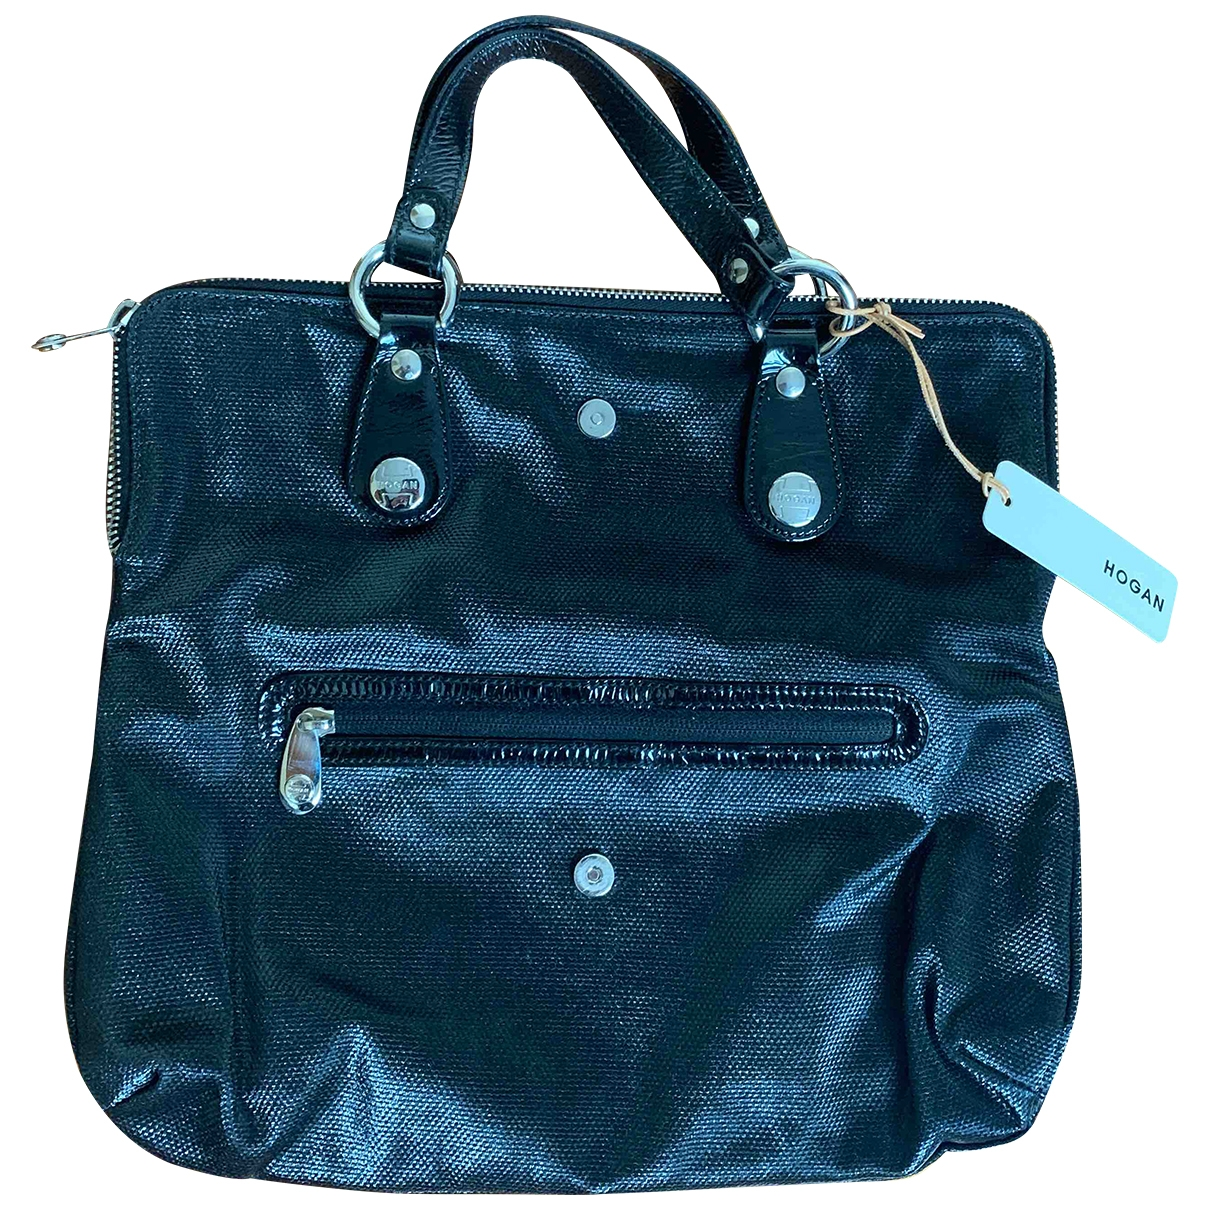 Hogan \N Black Patent leather handbag for Women \N